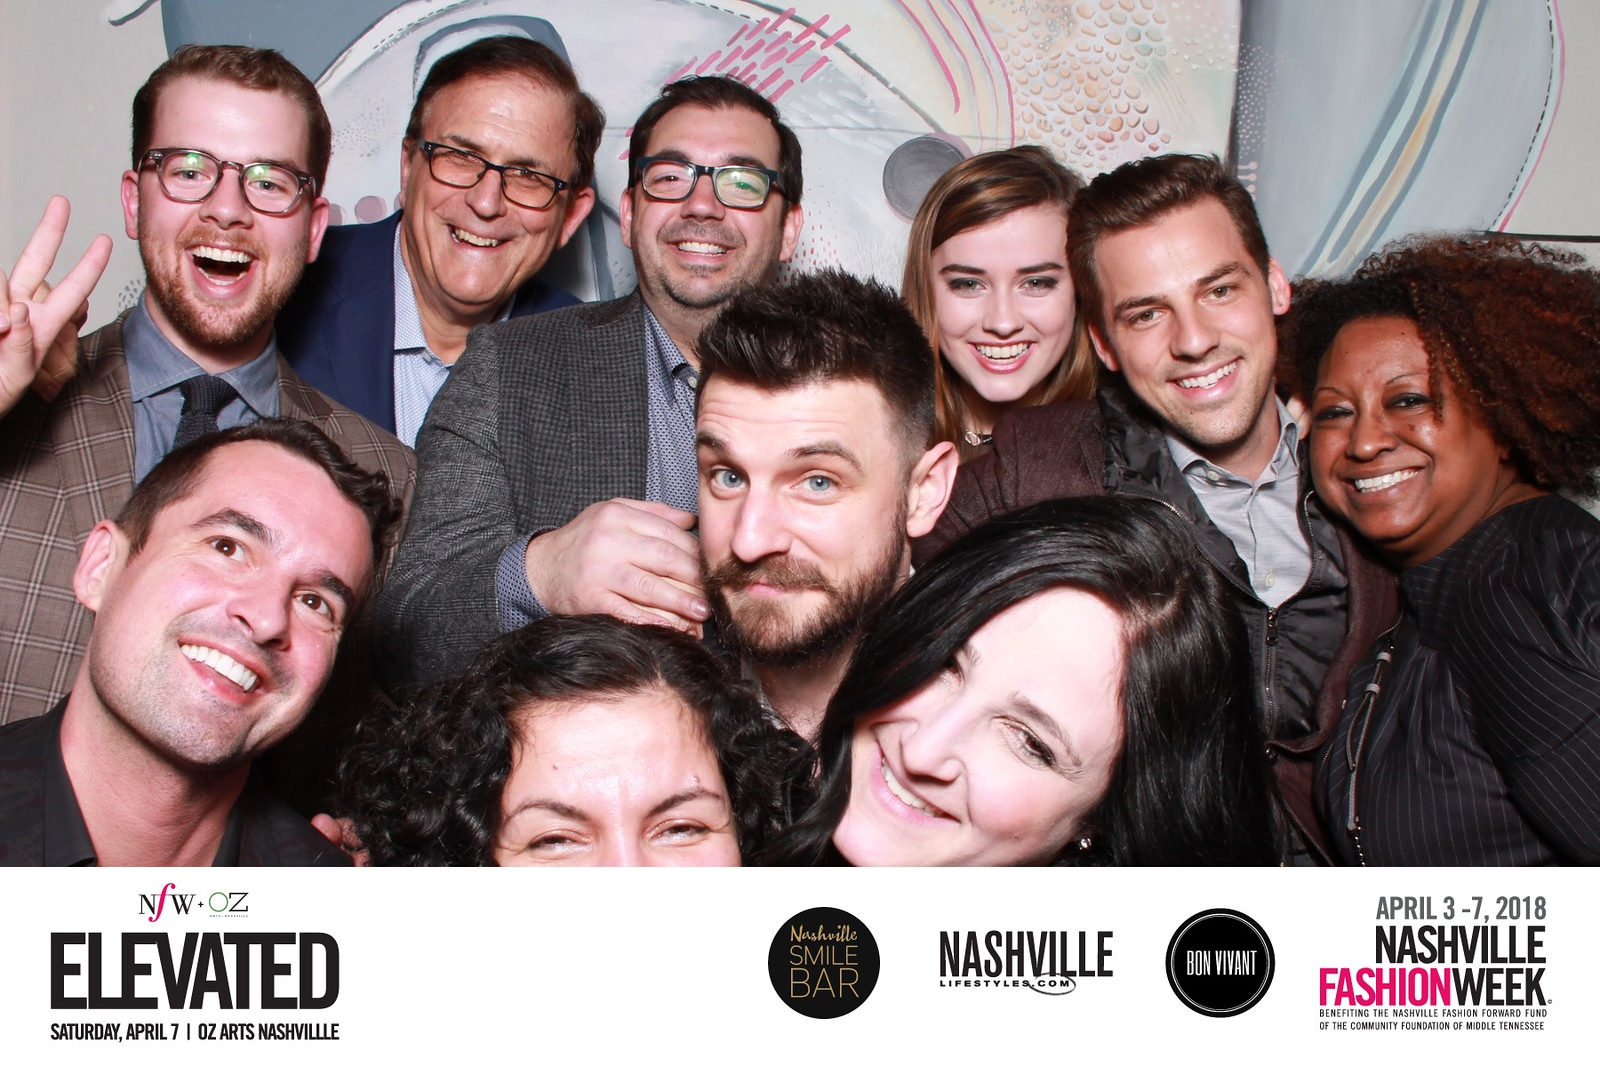 ELEVATED PHOTO BOOTH